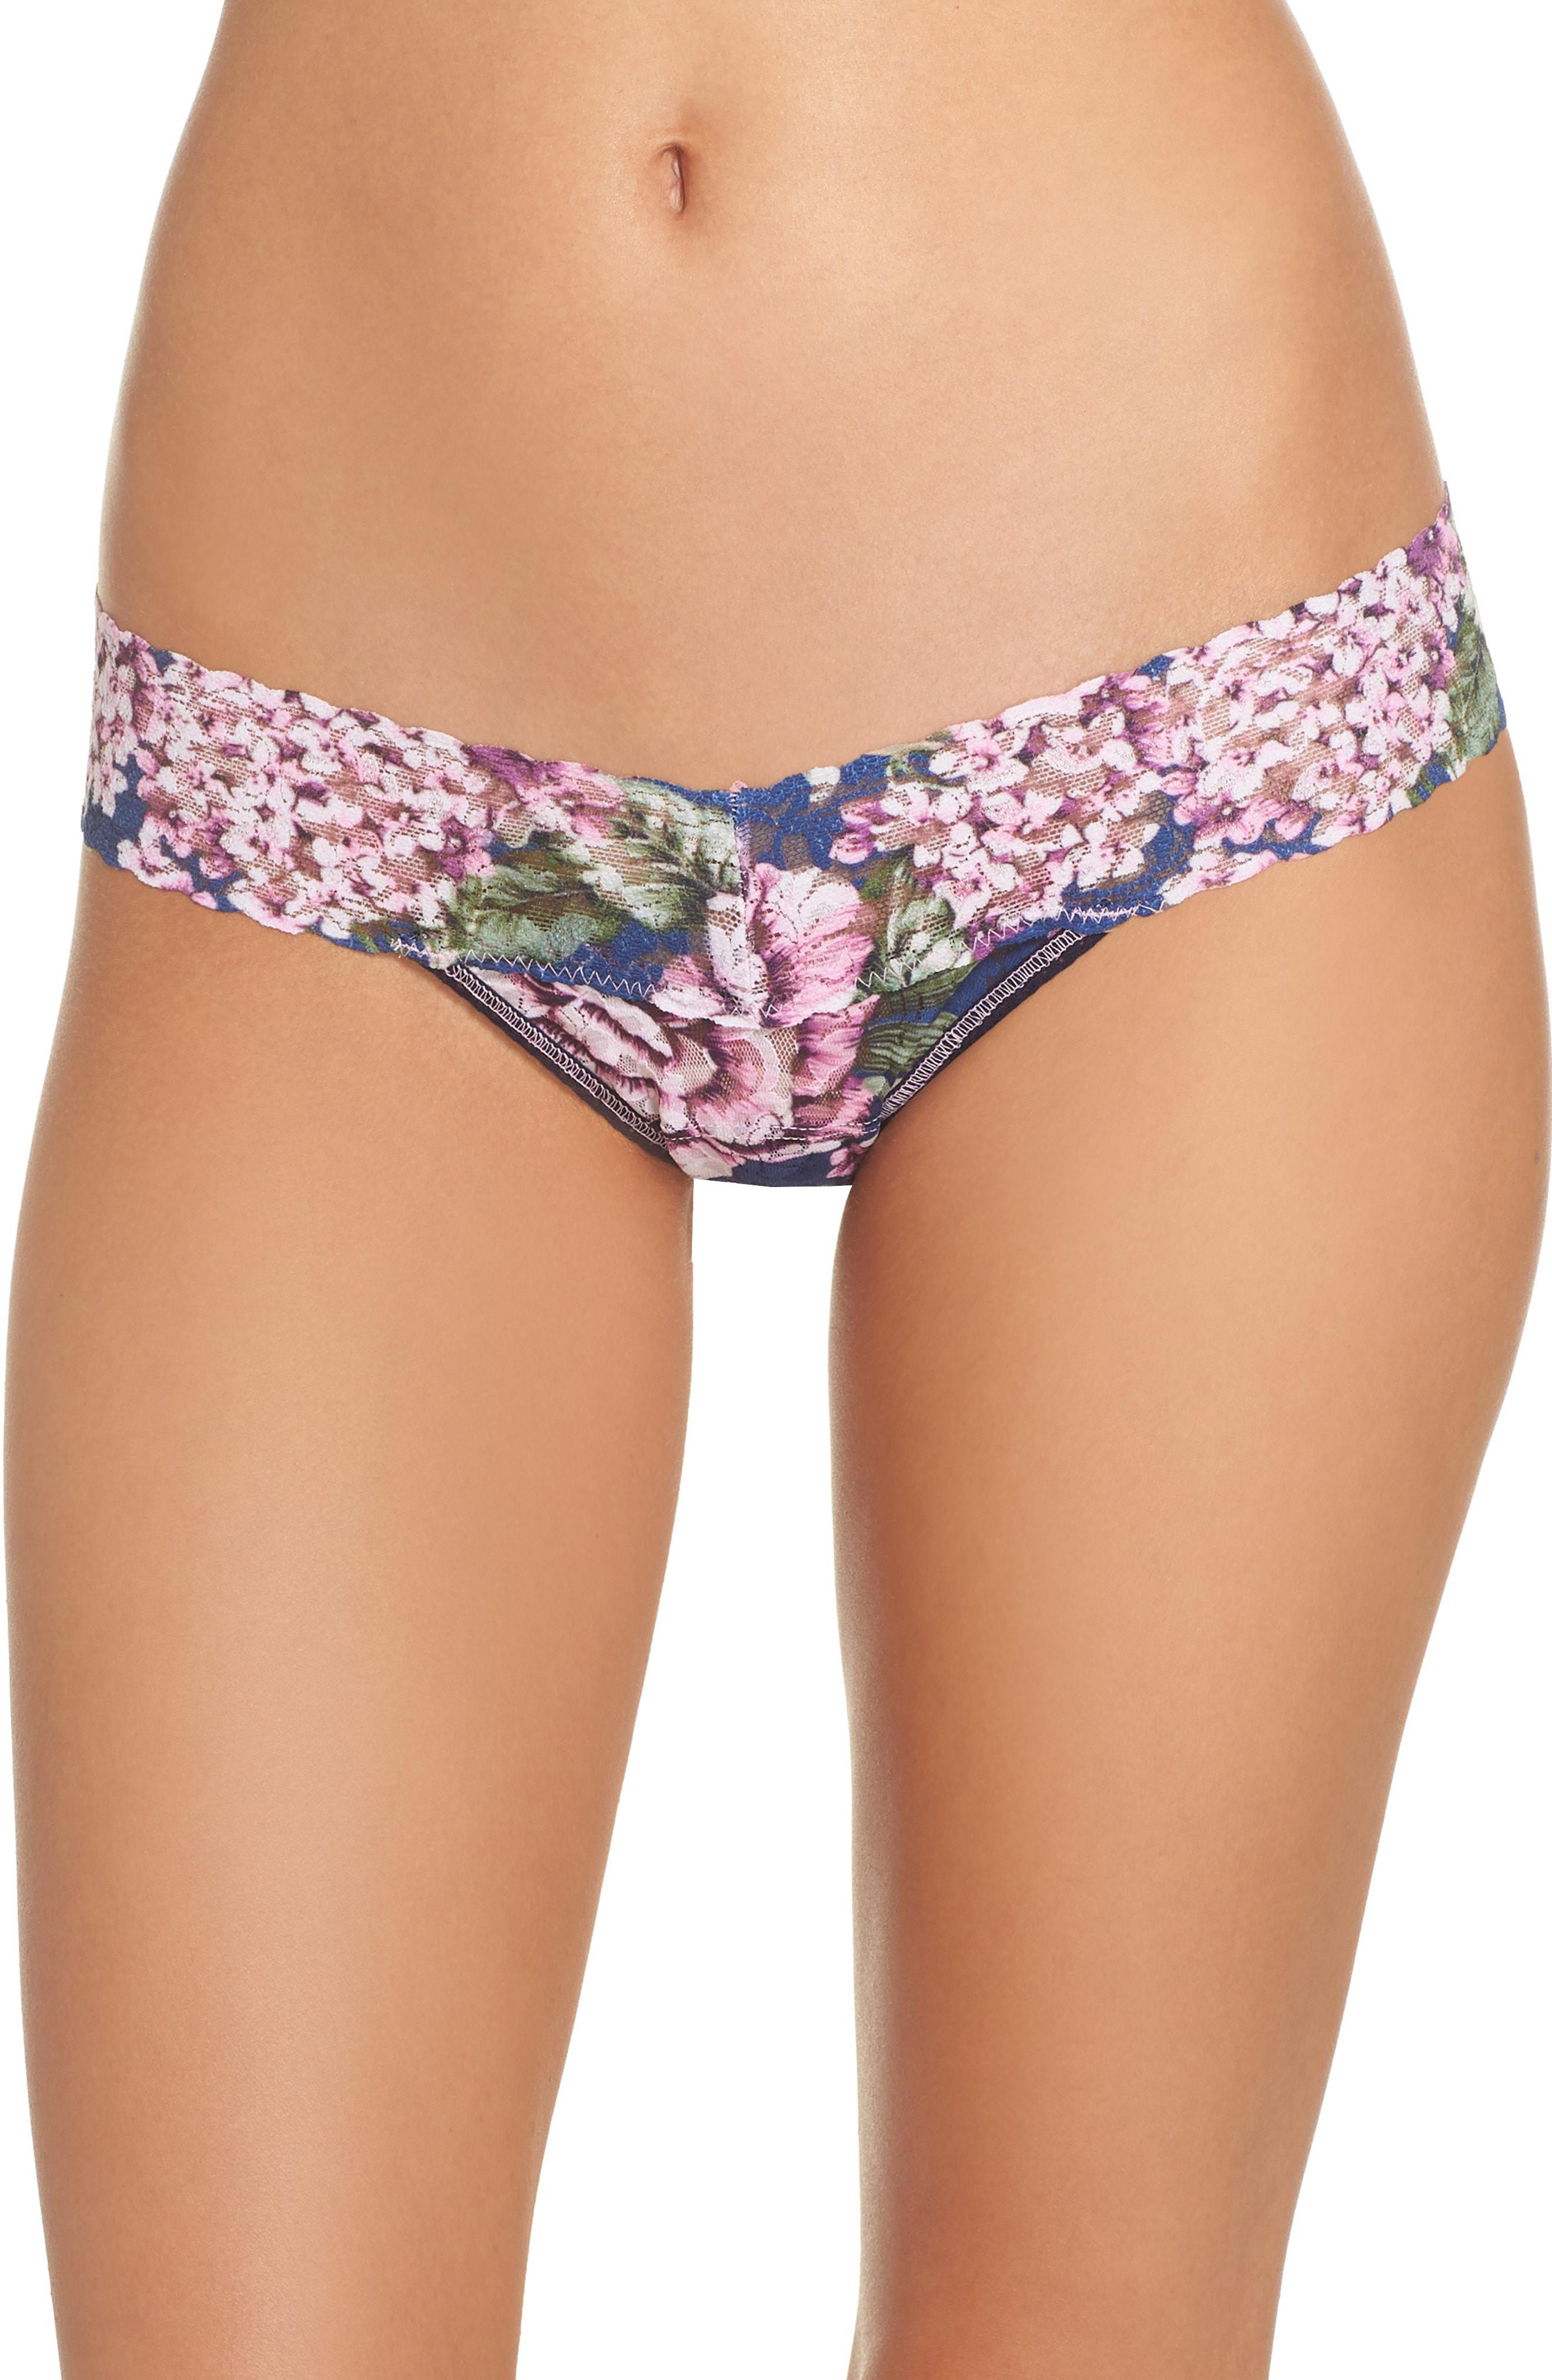 a8ca50445d Lyst - Hanky Panky Florentina Low Rise Thong in Purple